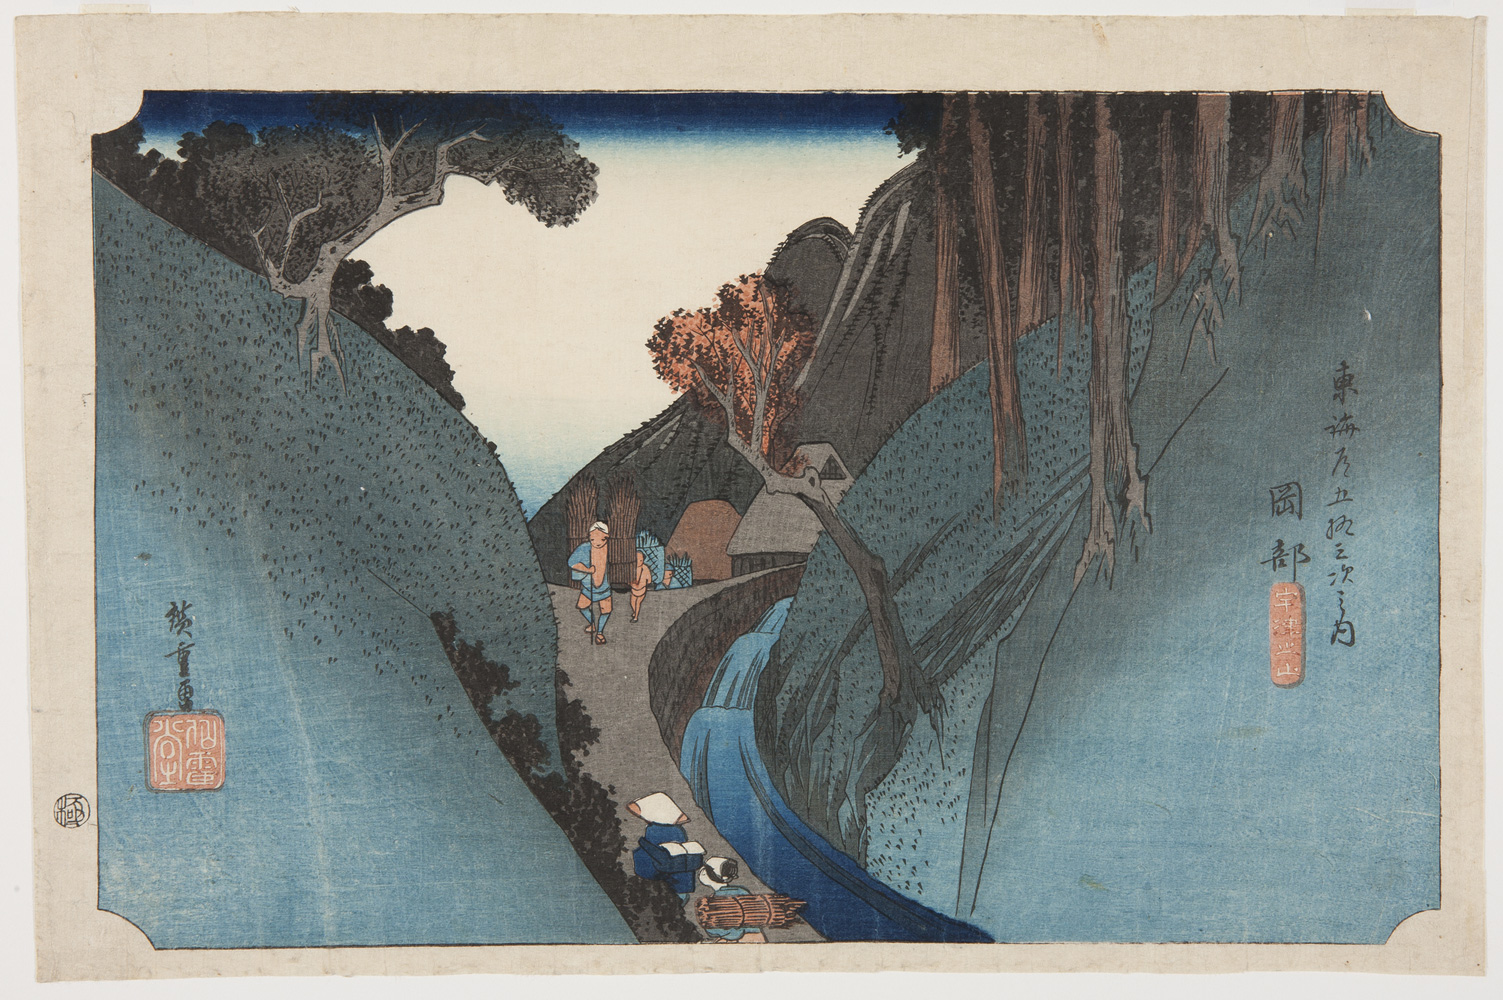 japanese print of a beautiful blue scene of a view through mountains, showing travelers walking up a very steep path and a waterfall next to the path